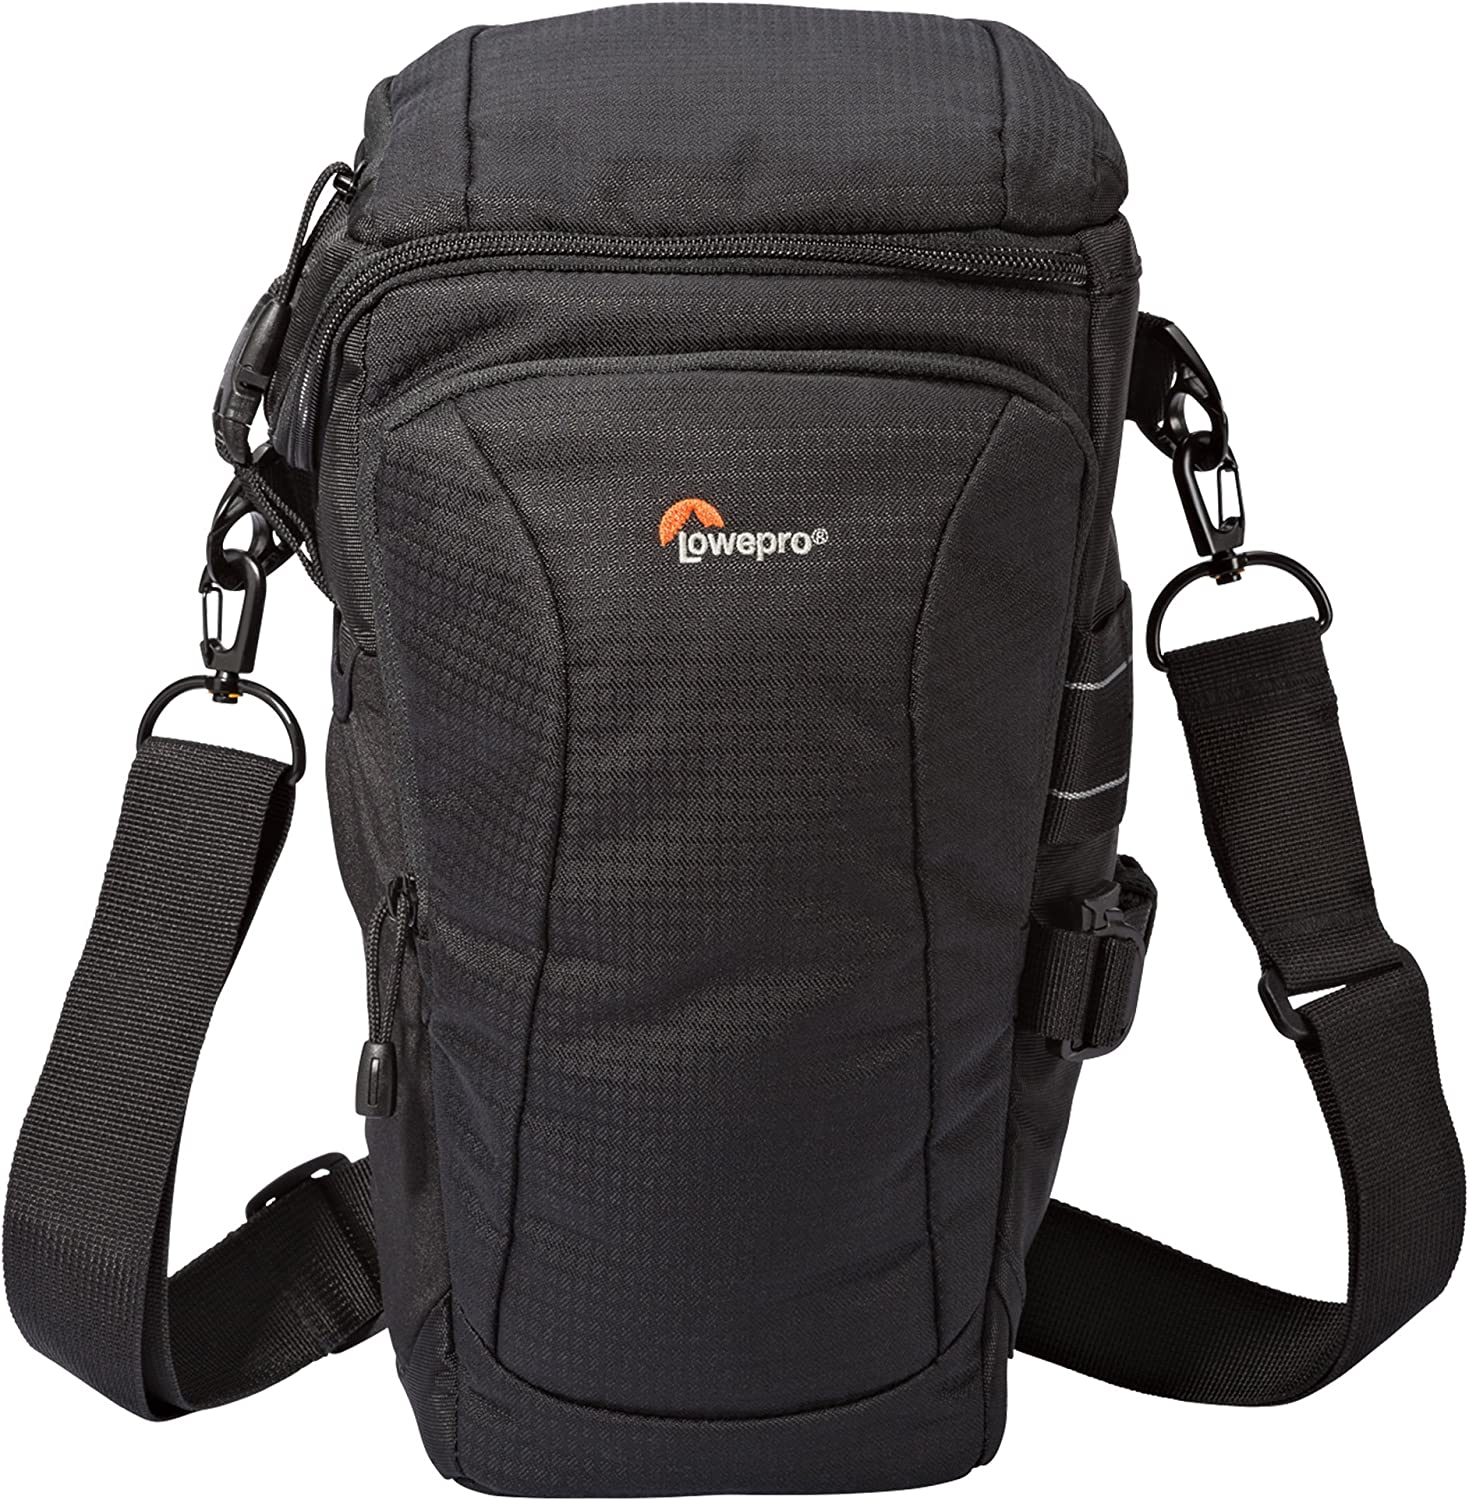 Lowepro Toploader Pro 75 AW II Camera Case – Top Loading Case For Your DSLR Camera and Lens